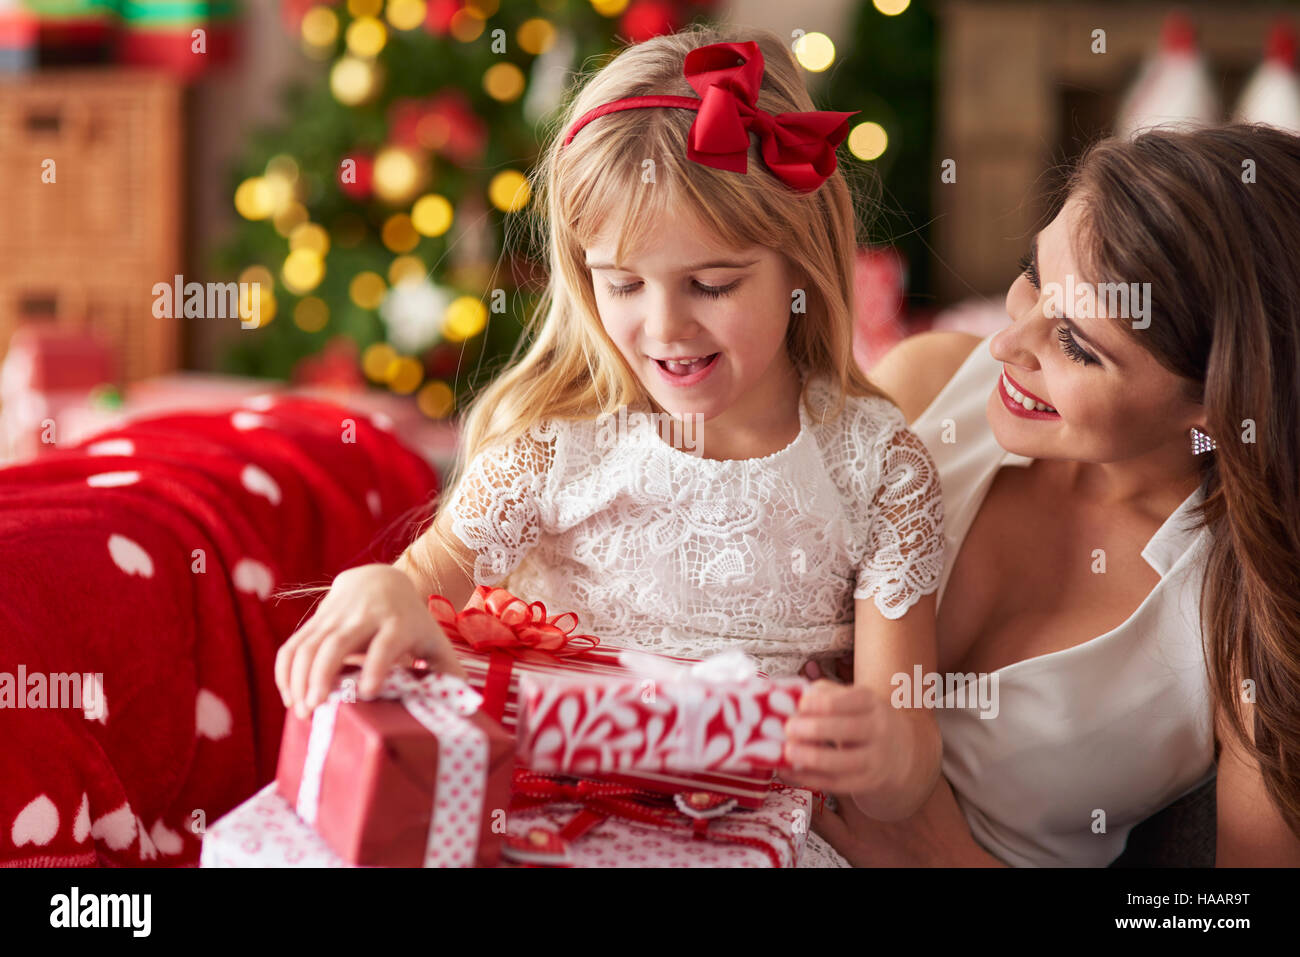 Mother bestowing daughter by plenty of presents - Stock Image